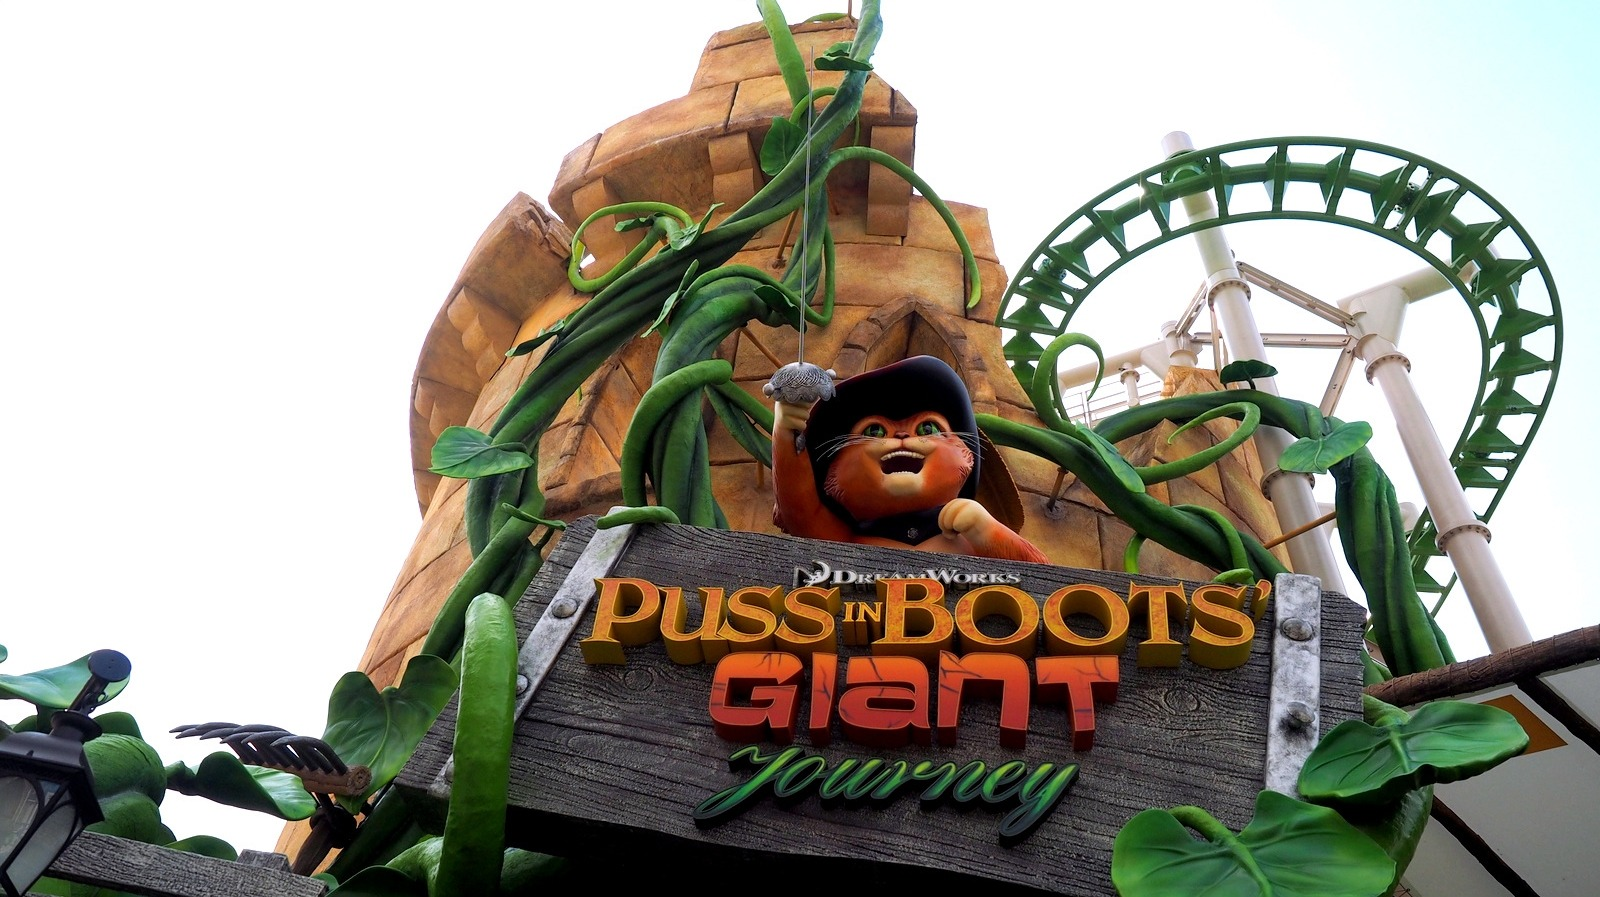 Puss In Boots 'Giant Journey, Universal Studios Singapore